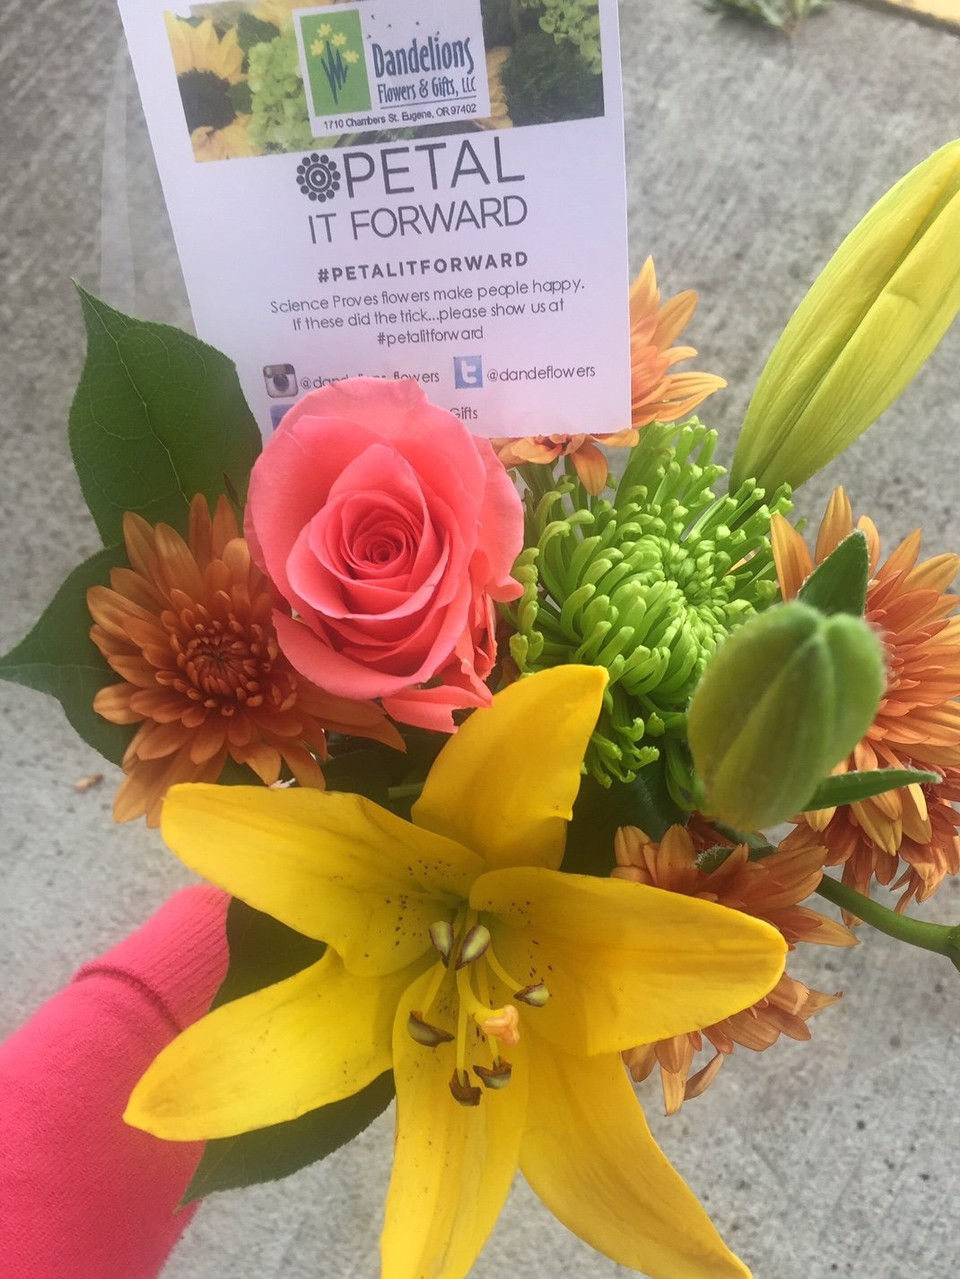 How to get, give free flowers today to 'Petal It Forward